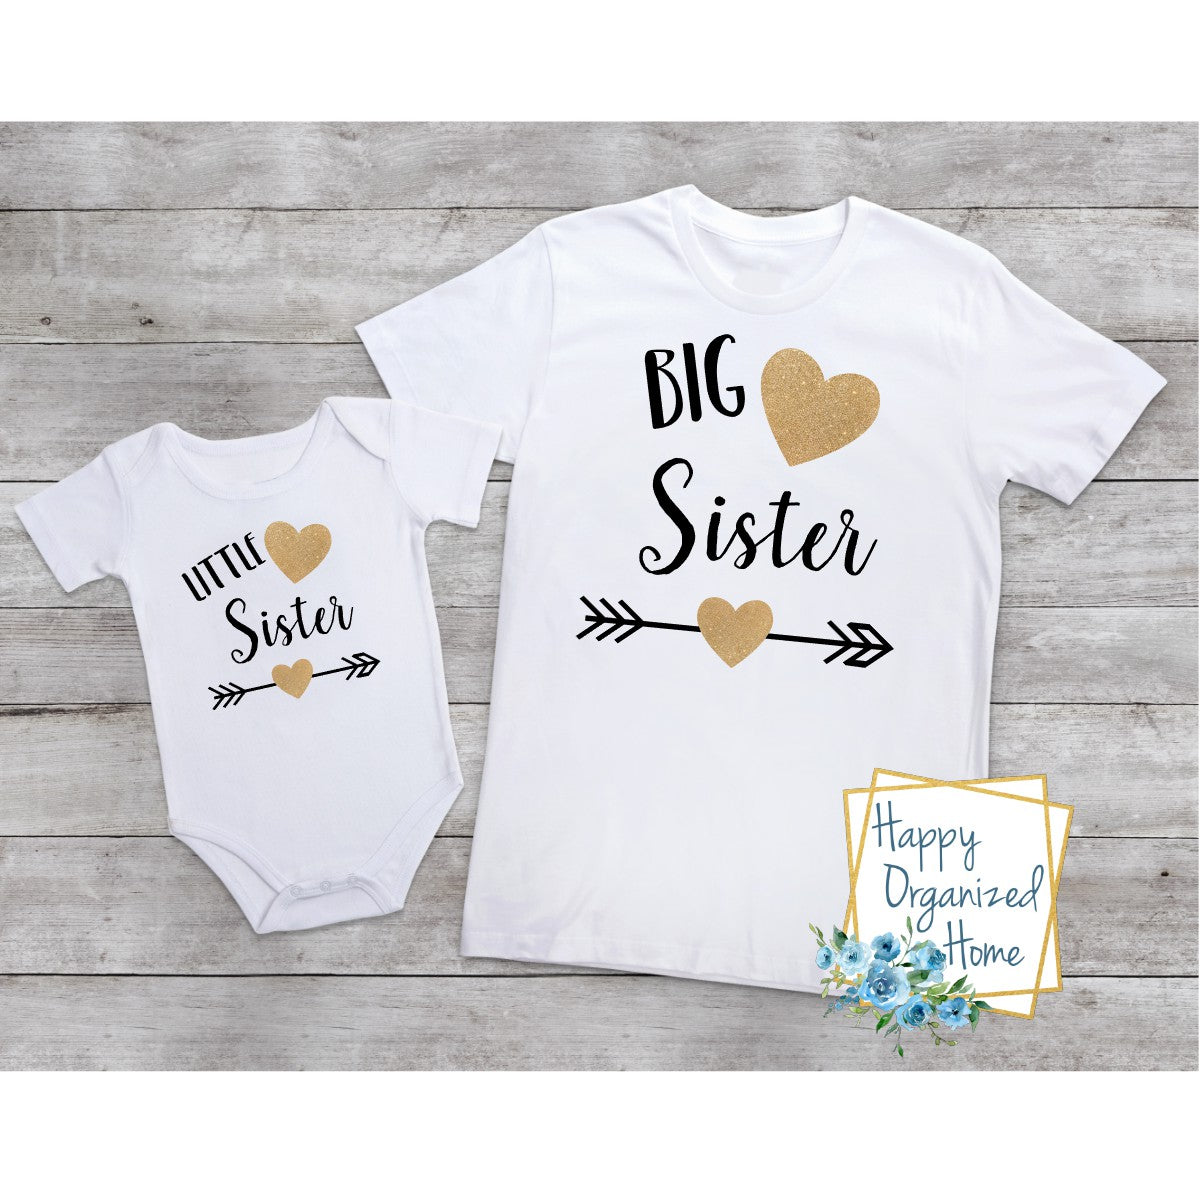 Big Sister and Little sister Heart and Arrows-  bodysuit and tshirt set